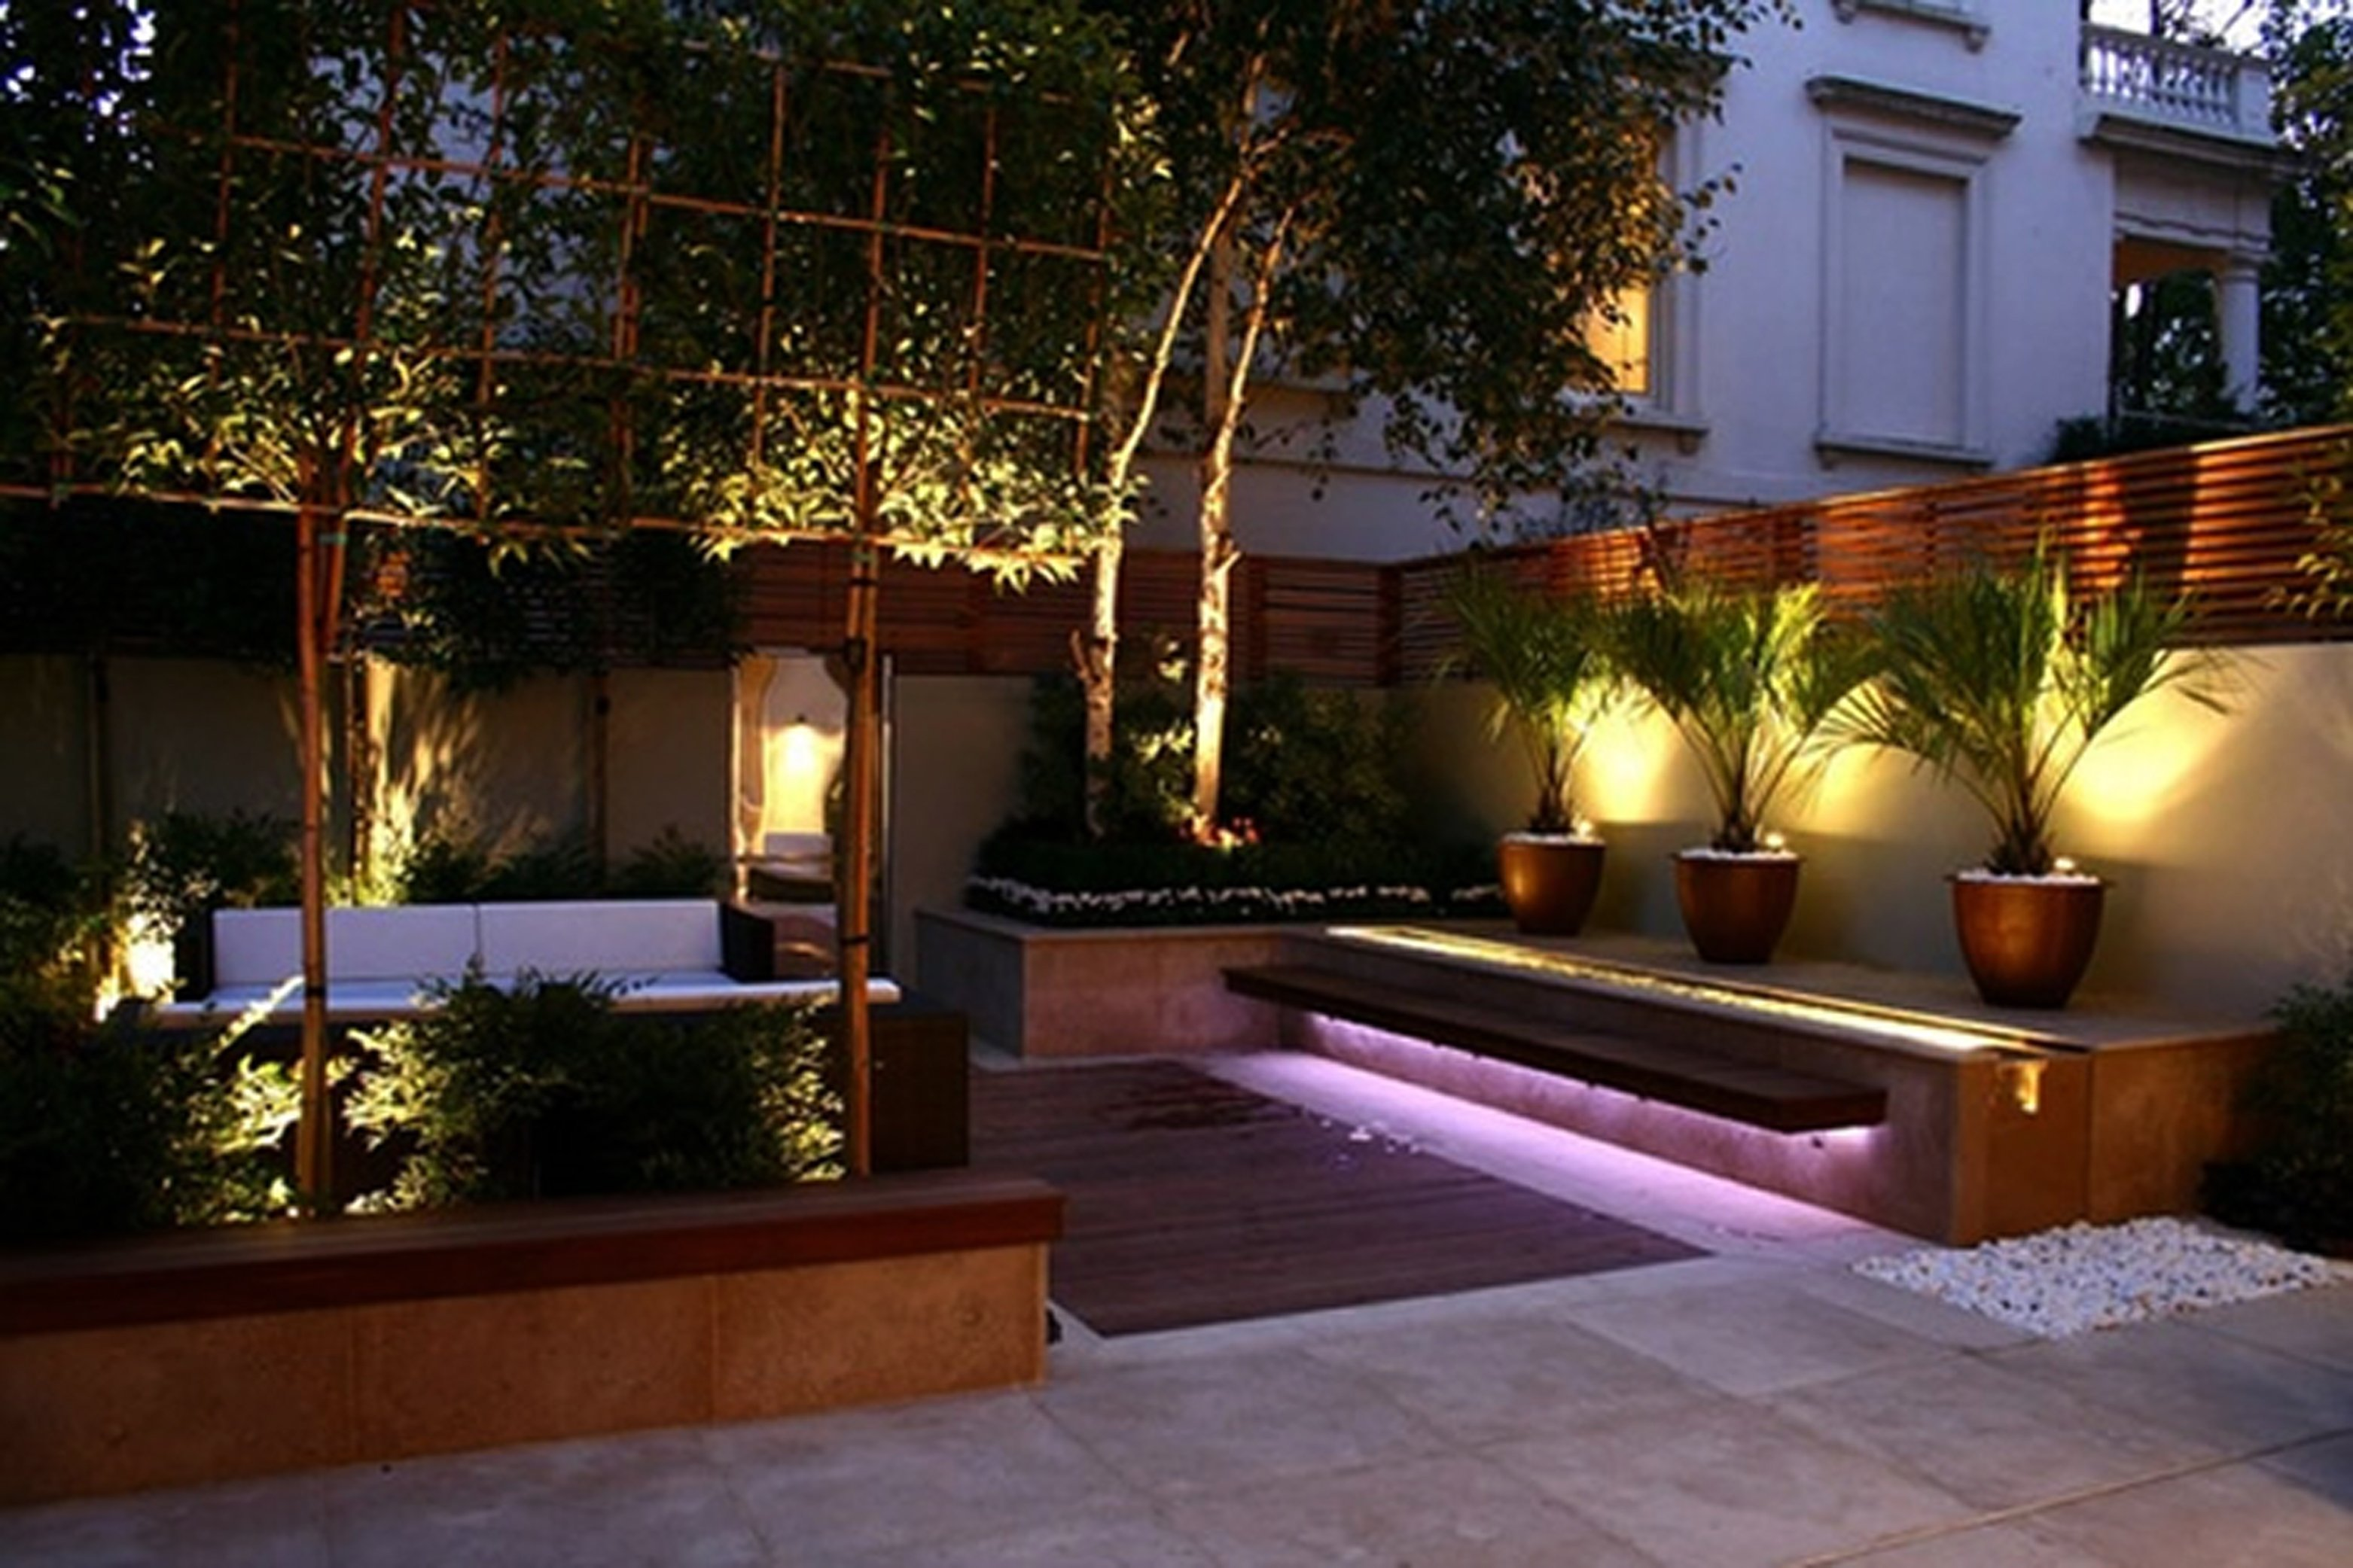 Ideas para decorar exteriores en primavera for Lamparas para patios exteriores